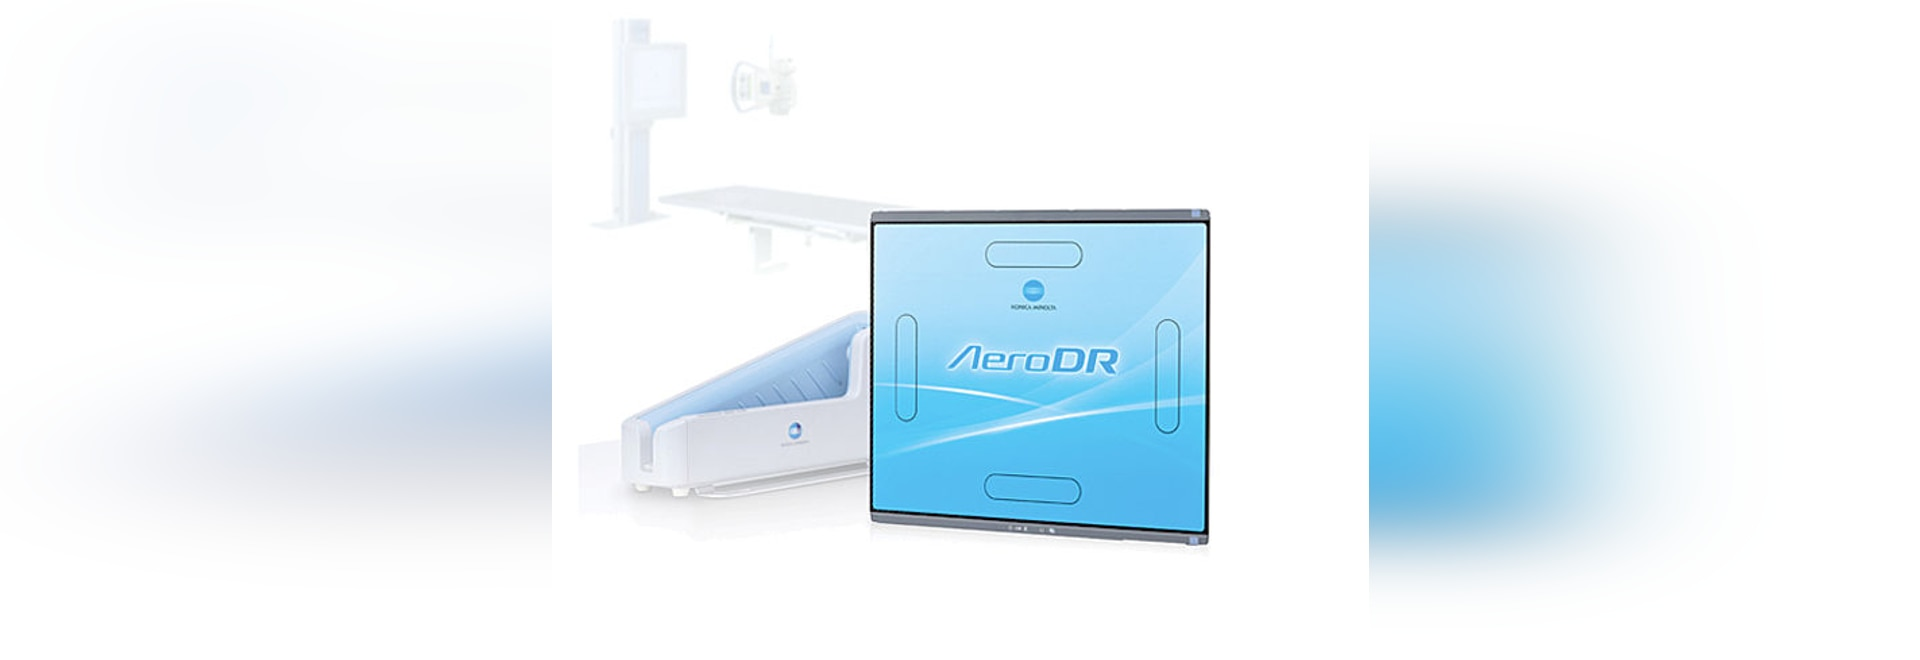 AeroDR 2S by Konica Minolta - Top 10 reasons to retrofit your X-ray room